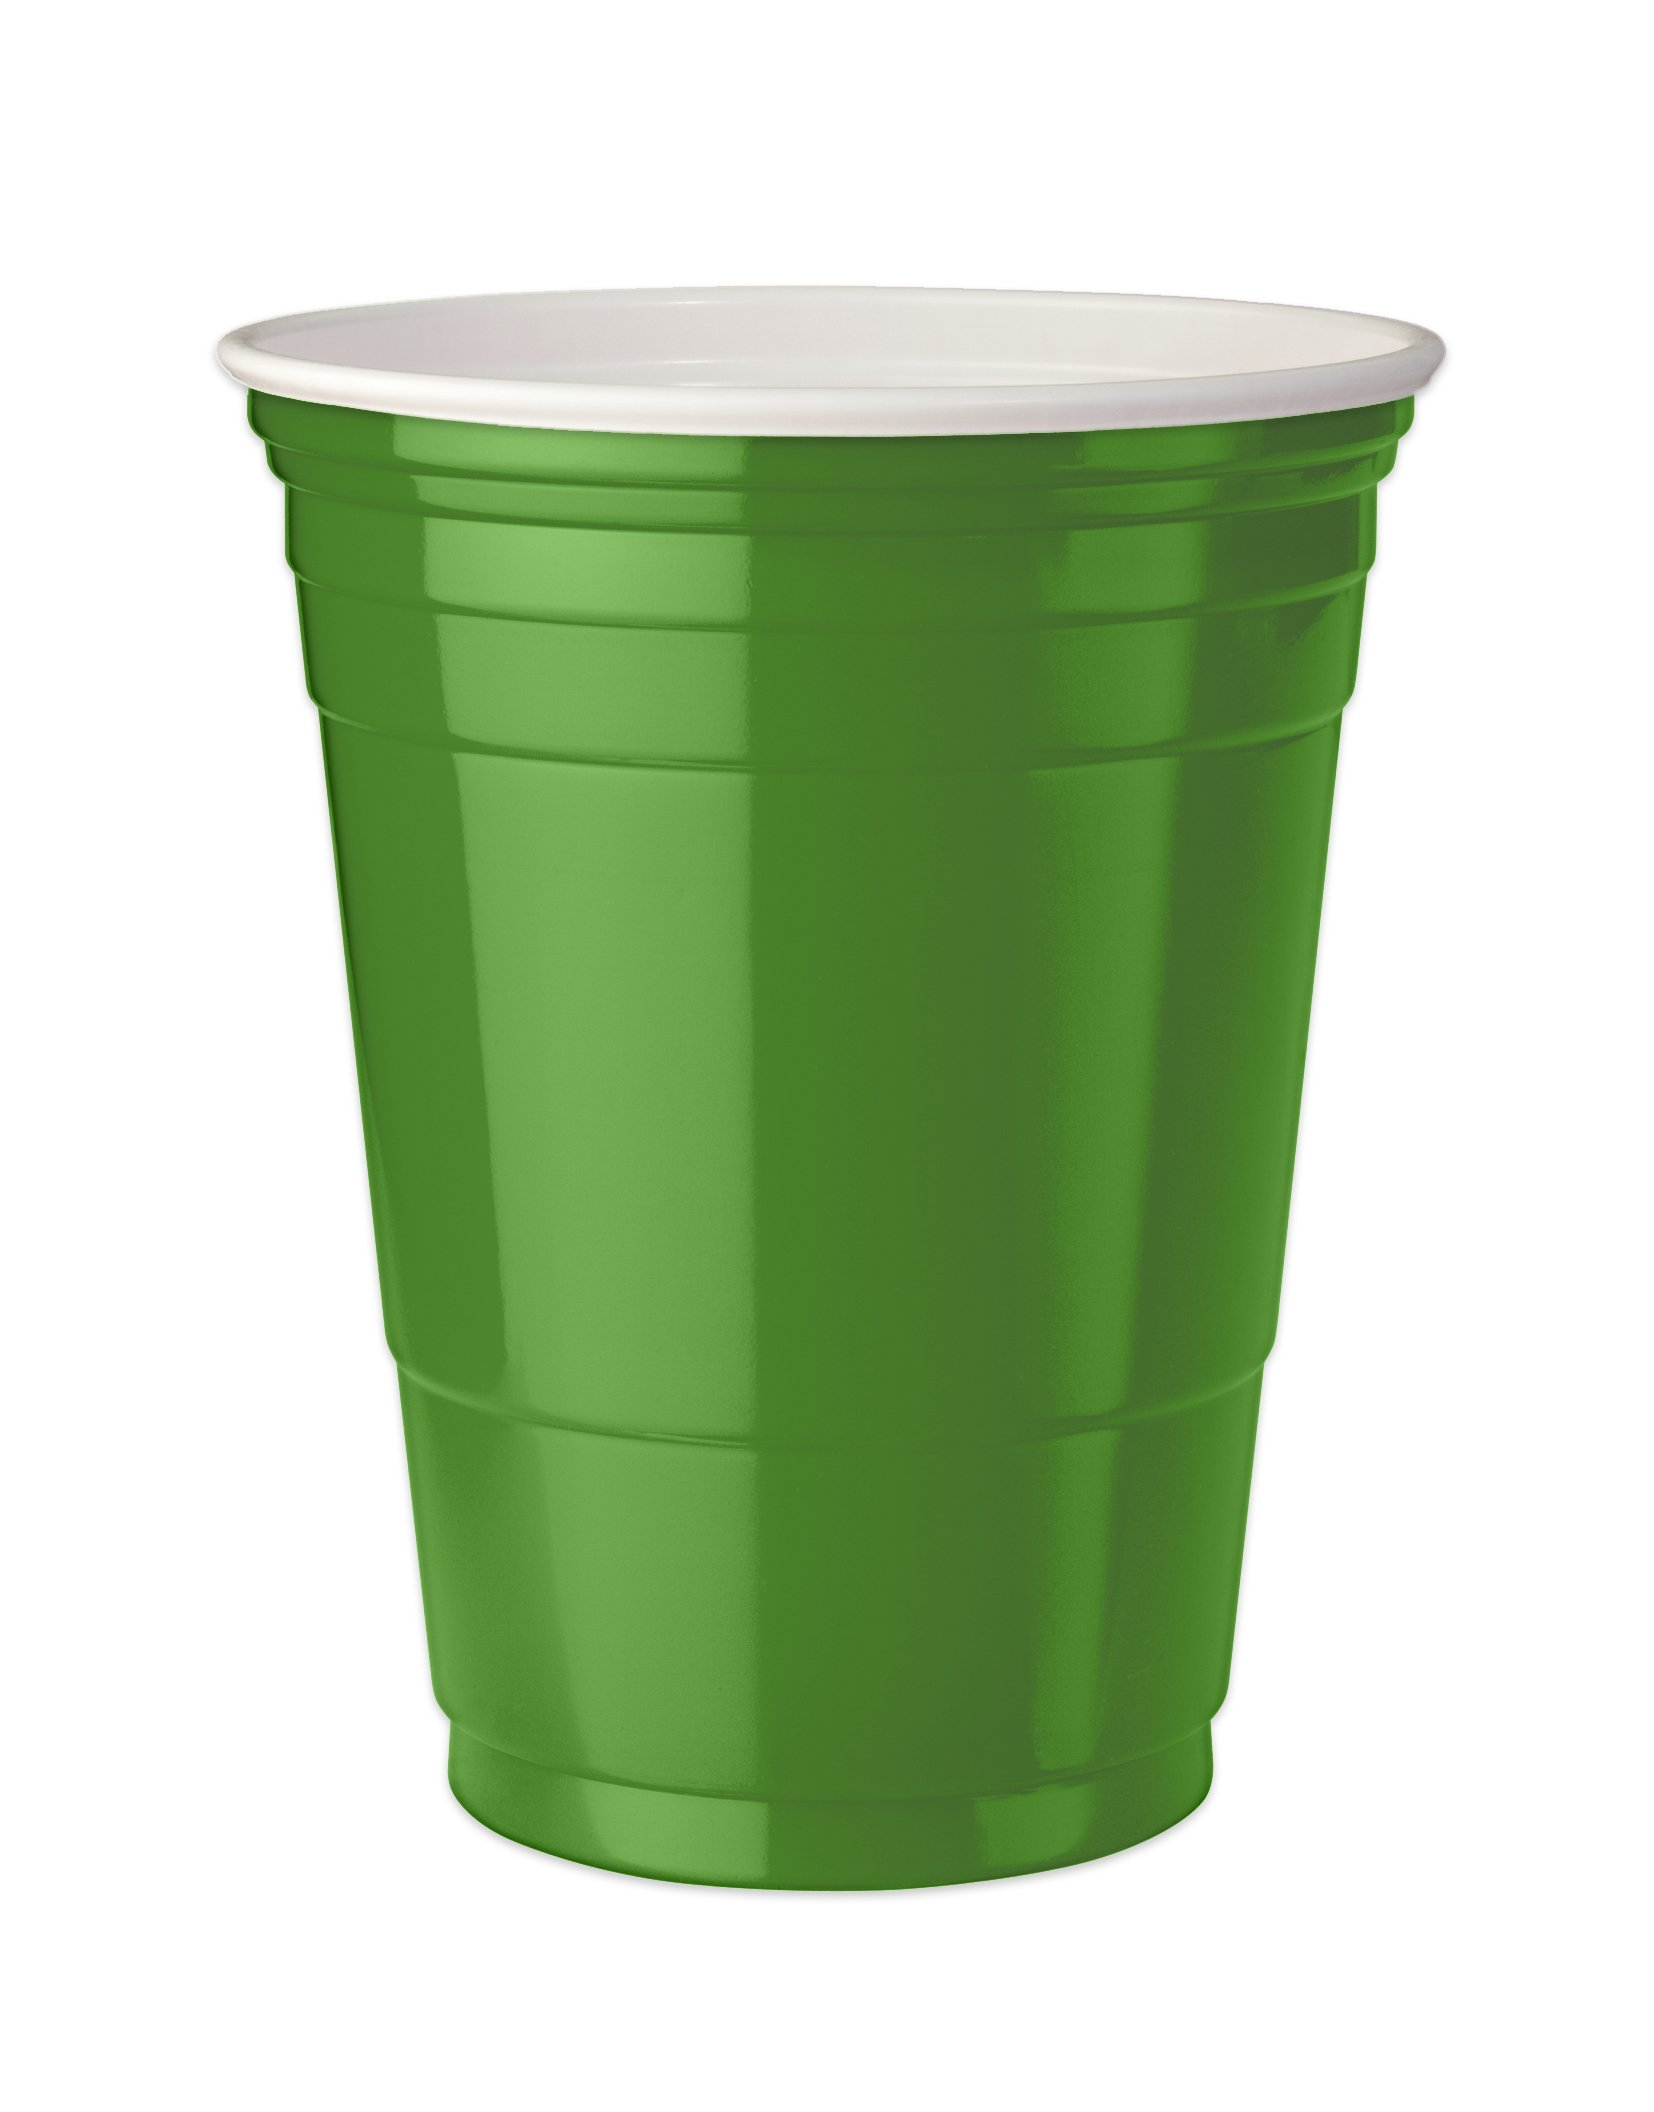 Mr. Ice Bucket (403-4) Double Walled Insulated Party Cups, 16-Ounce, Green, Pack of 4